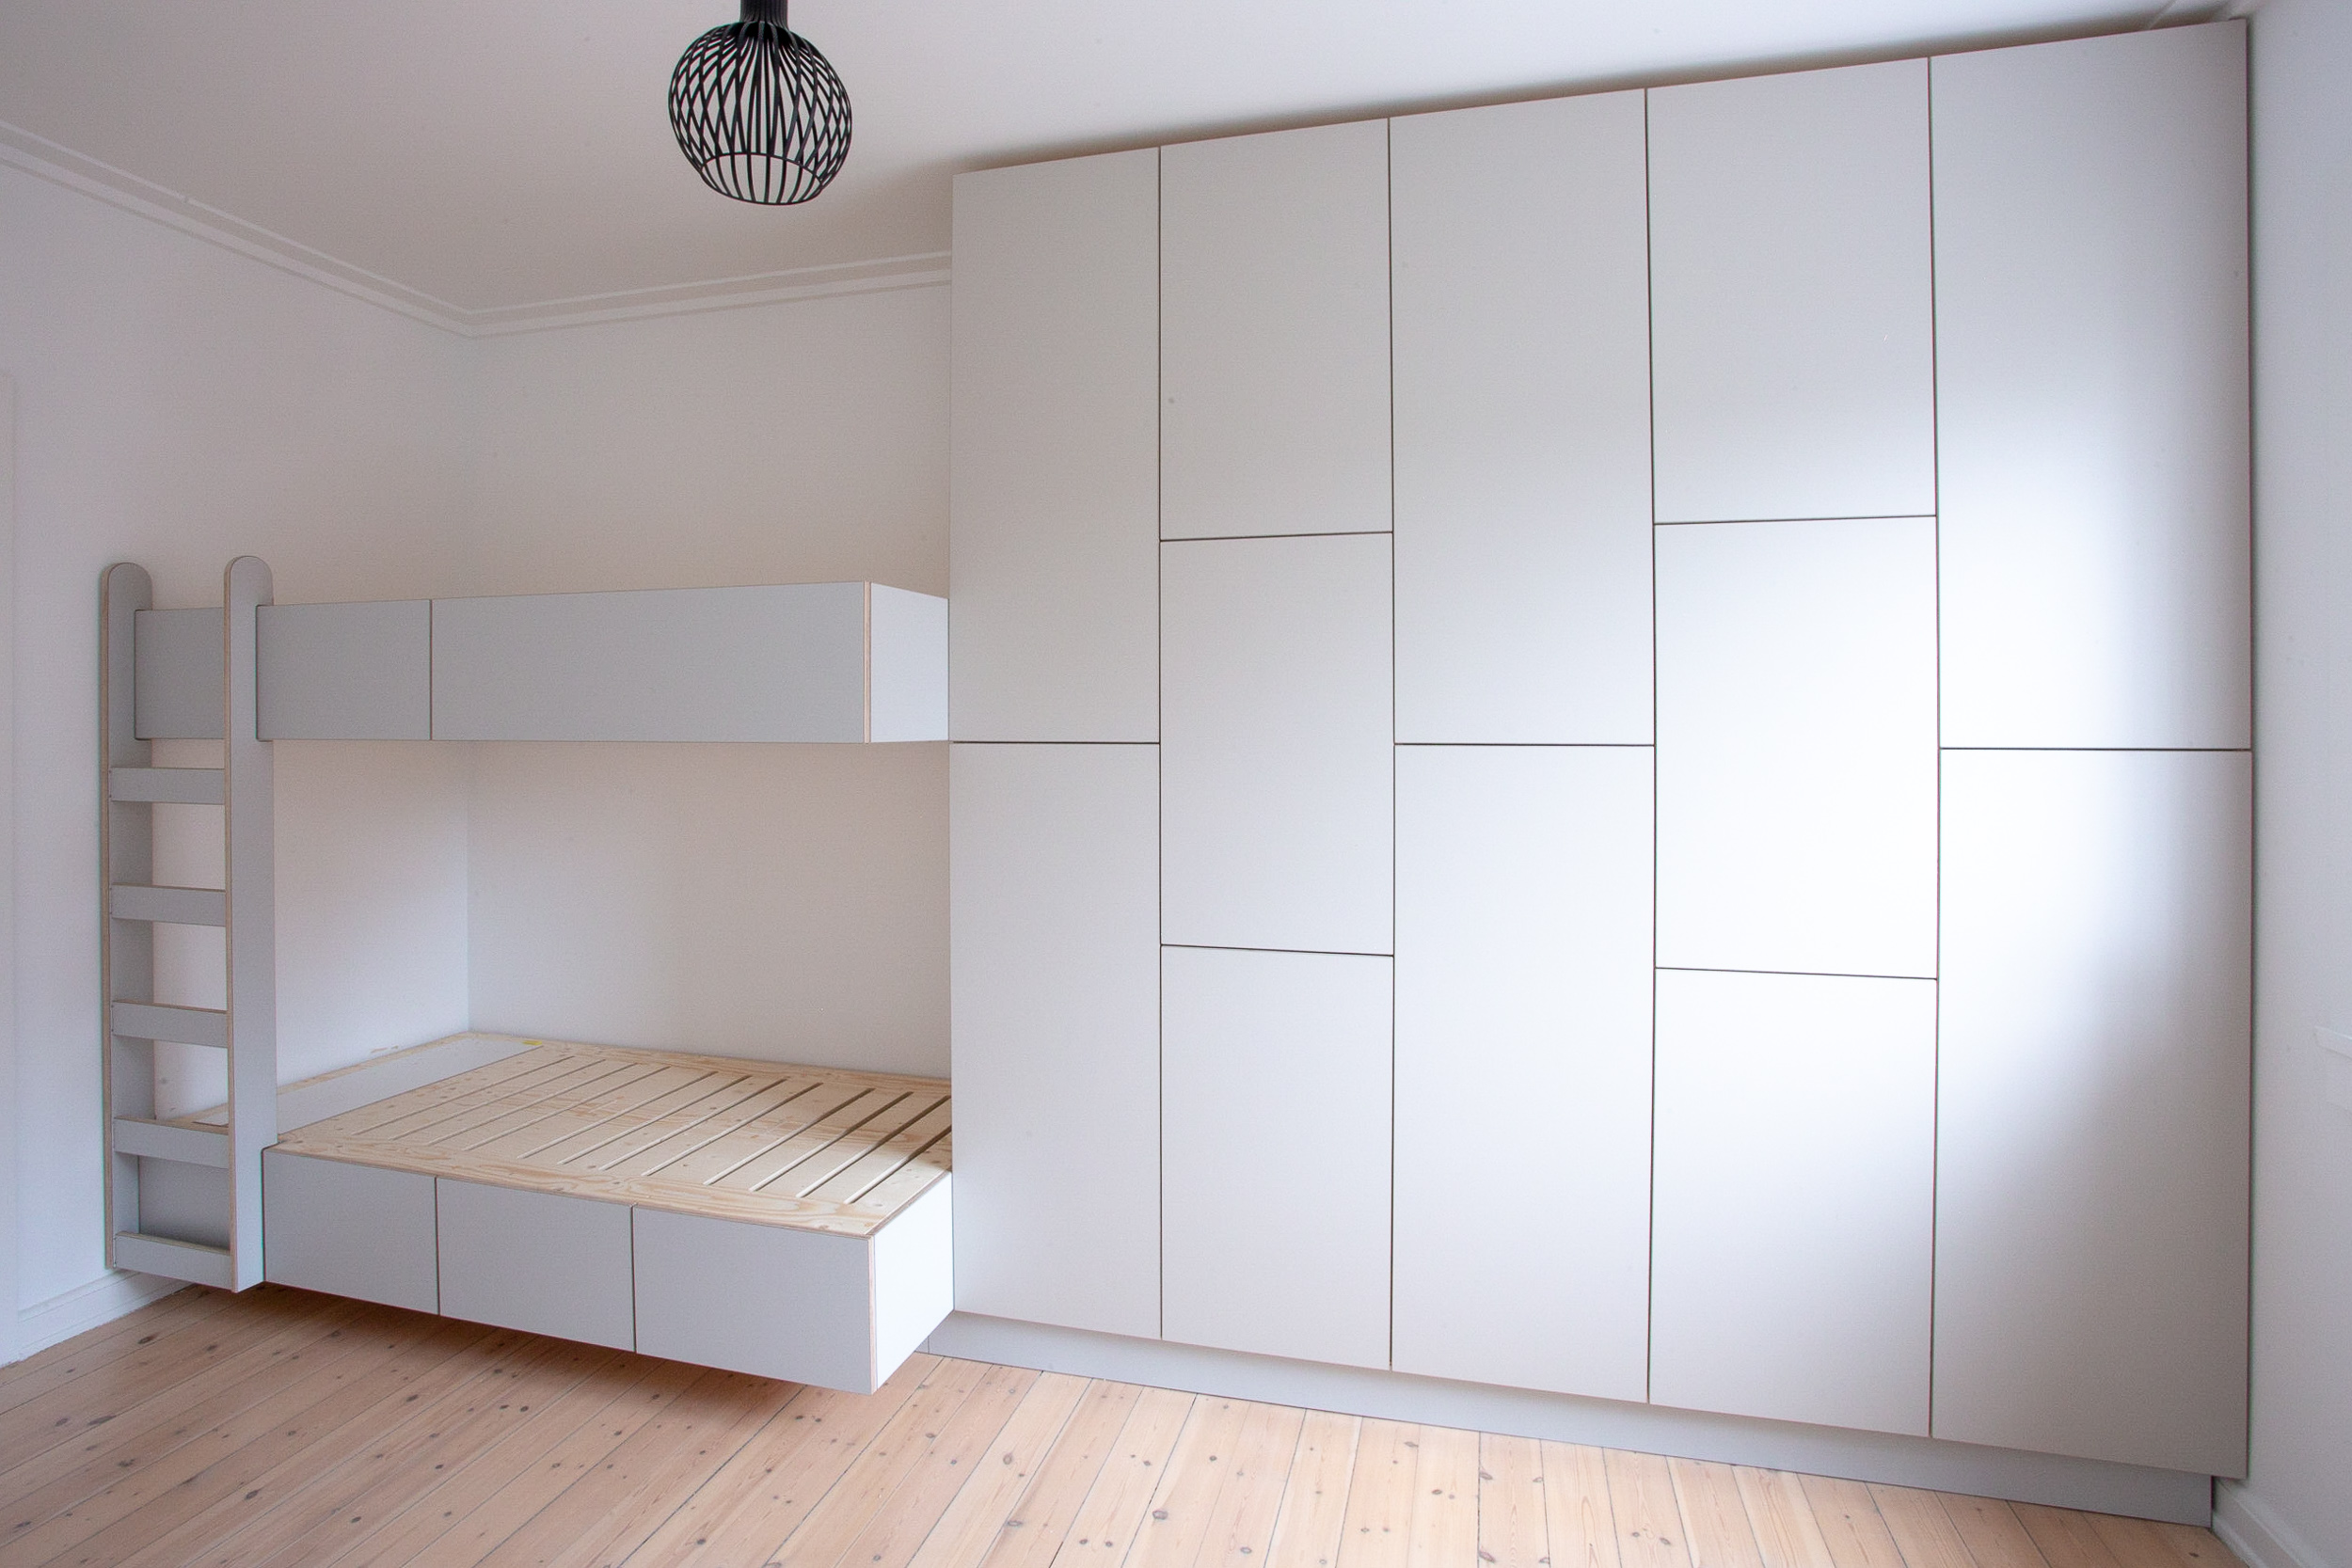 0930-a1h1-wardrobe-bunk-bed-ladder-kids-room-built-in-grey-minimal-stay-project-2500x.jpg